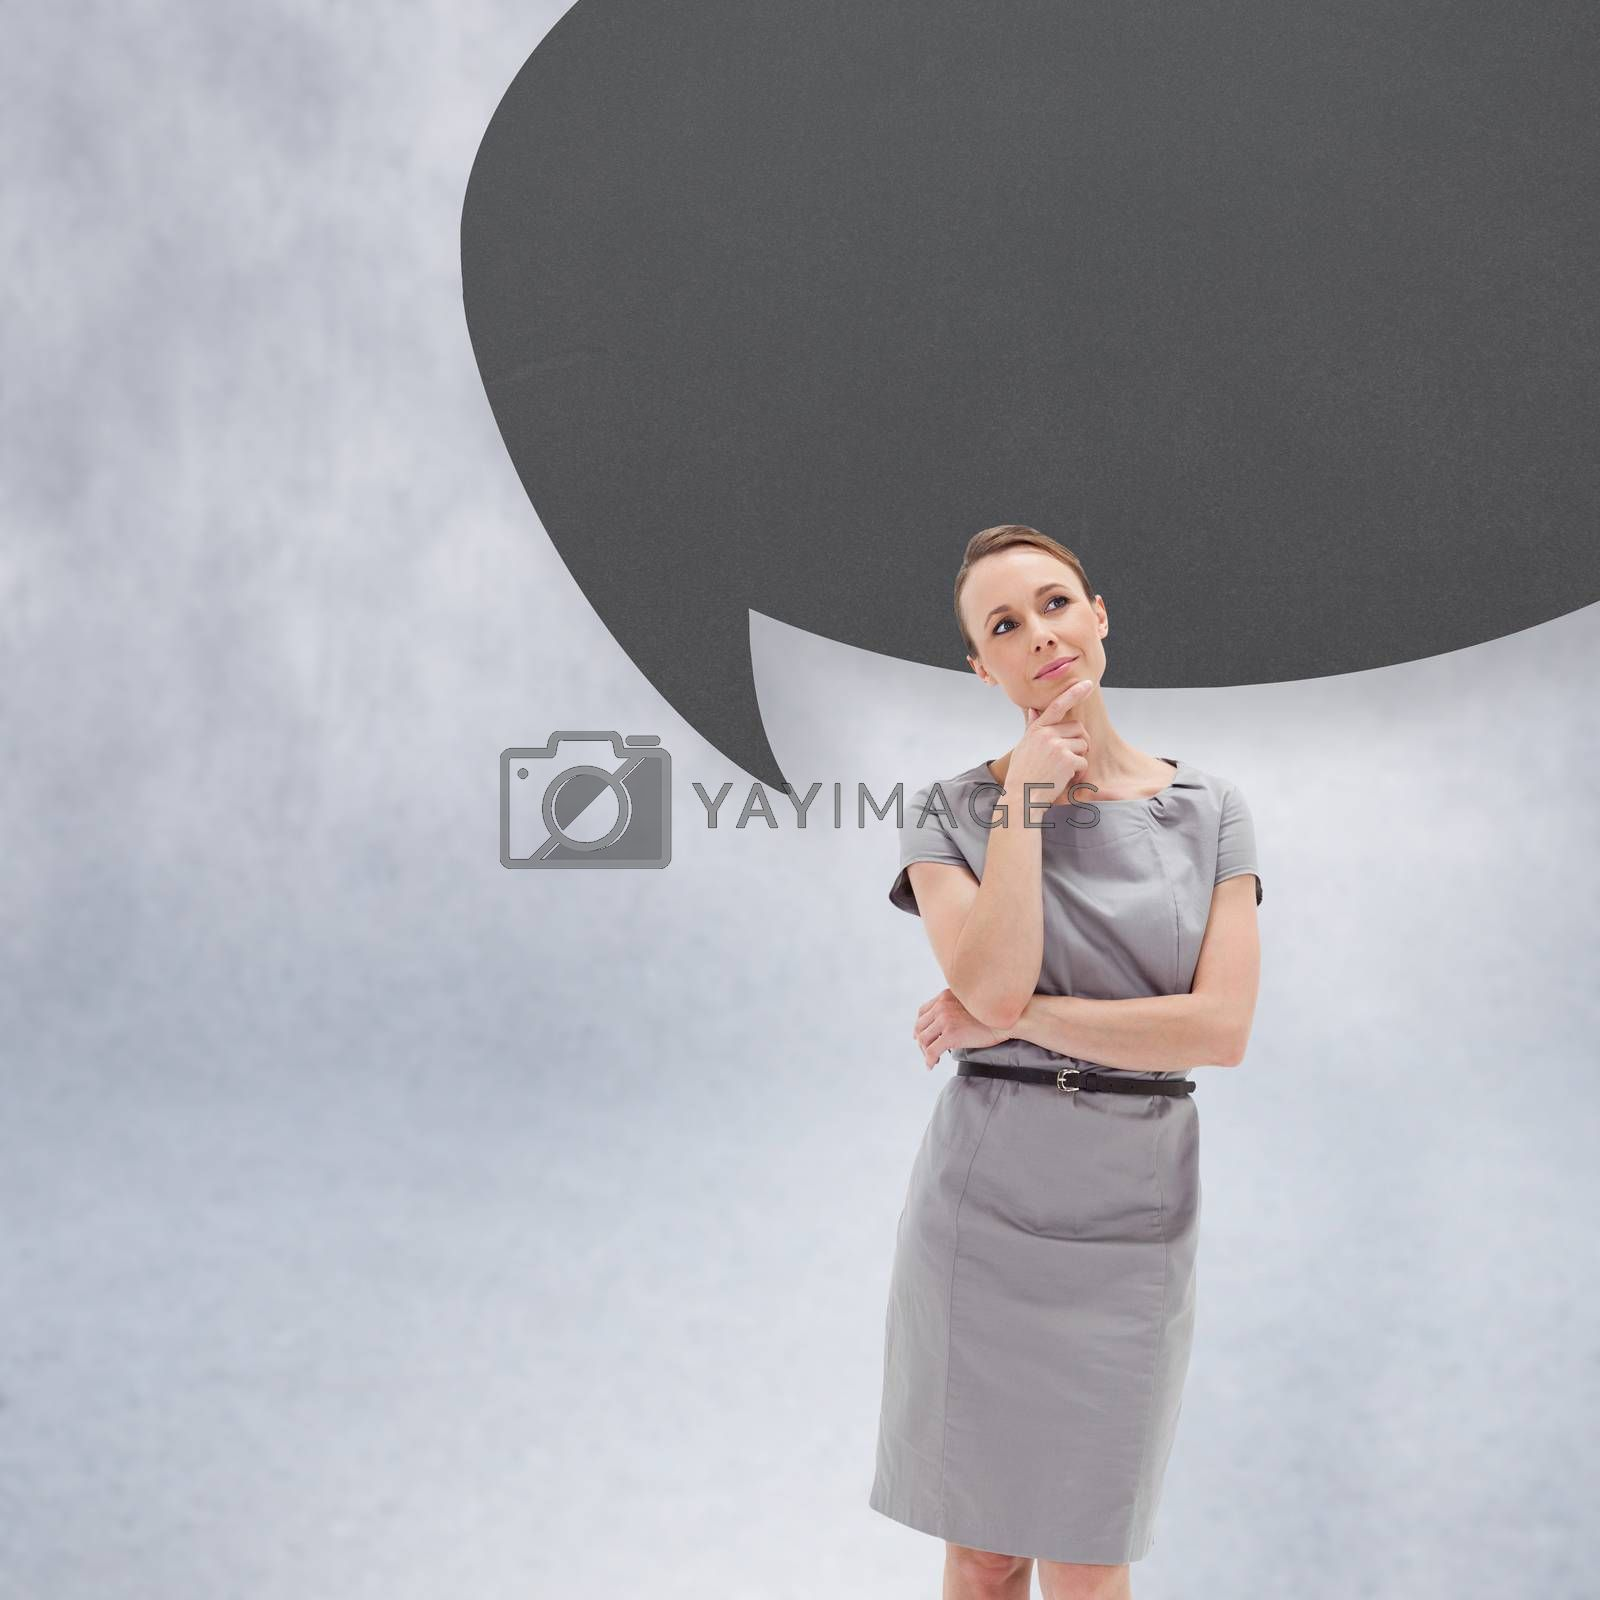 Thoughtful woman posing in dress with speech bubble against grey wall